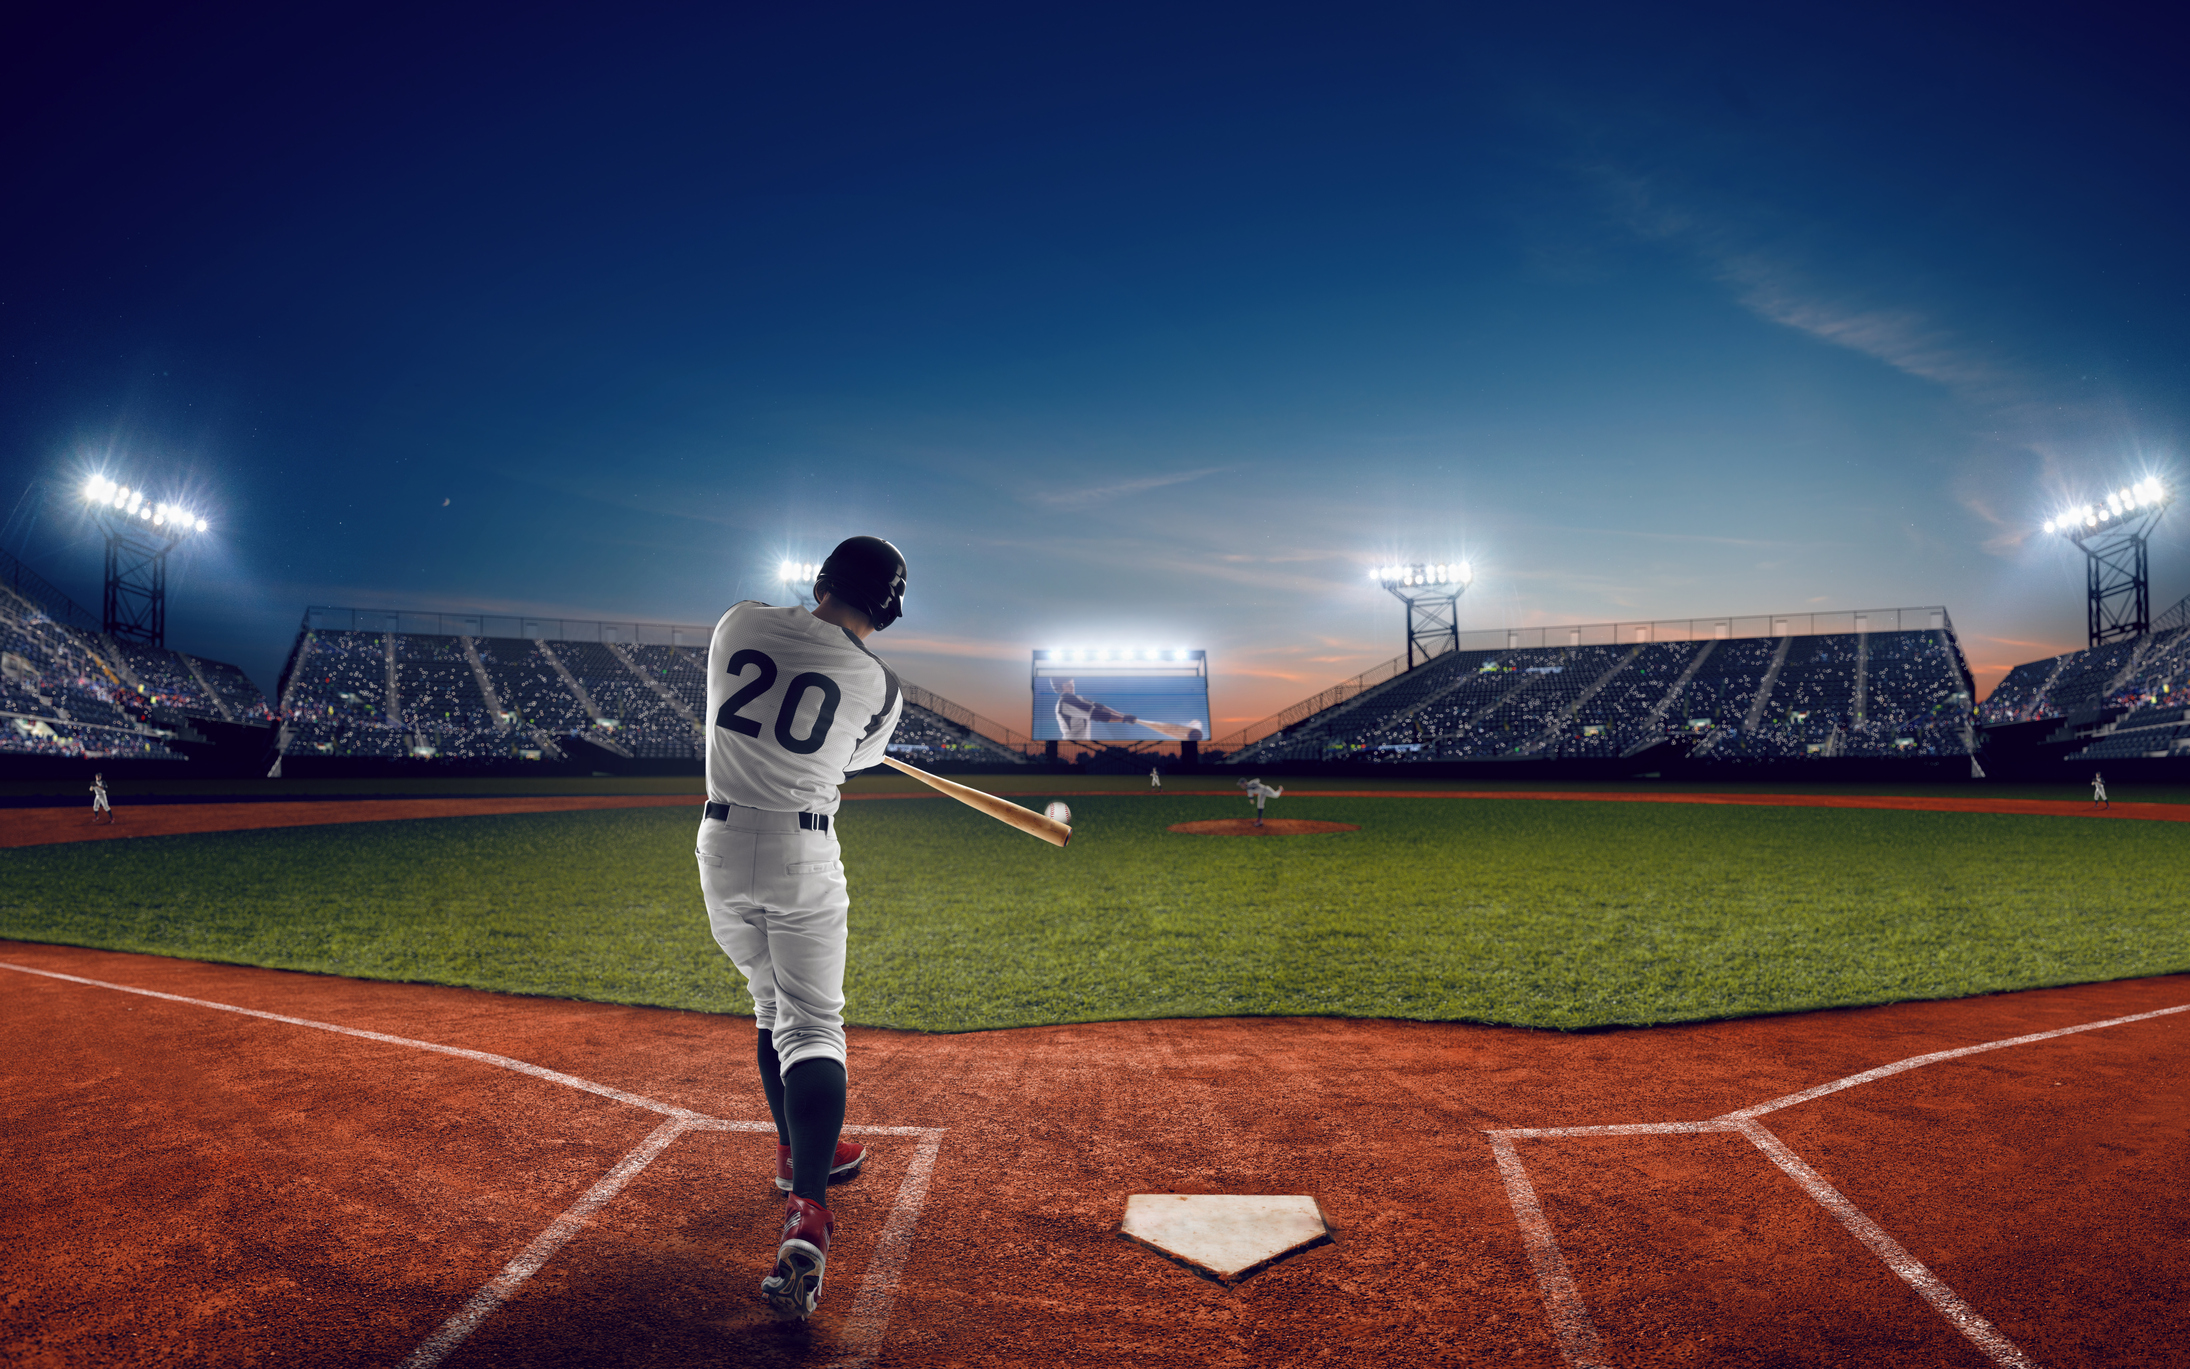 A baseball hitter swinging with view toward the outfield